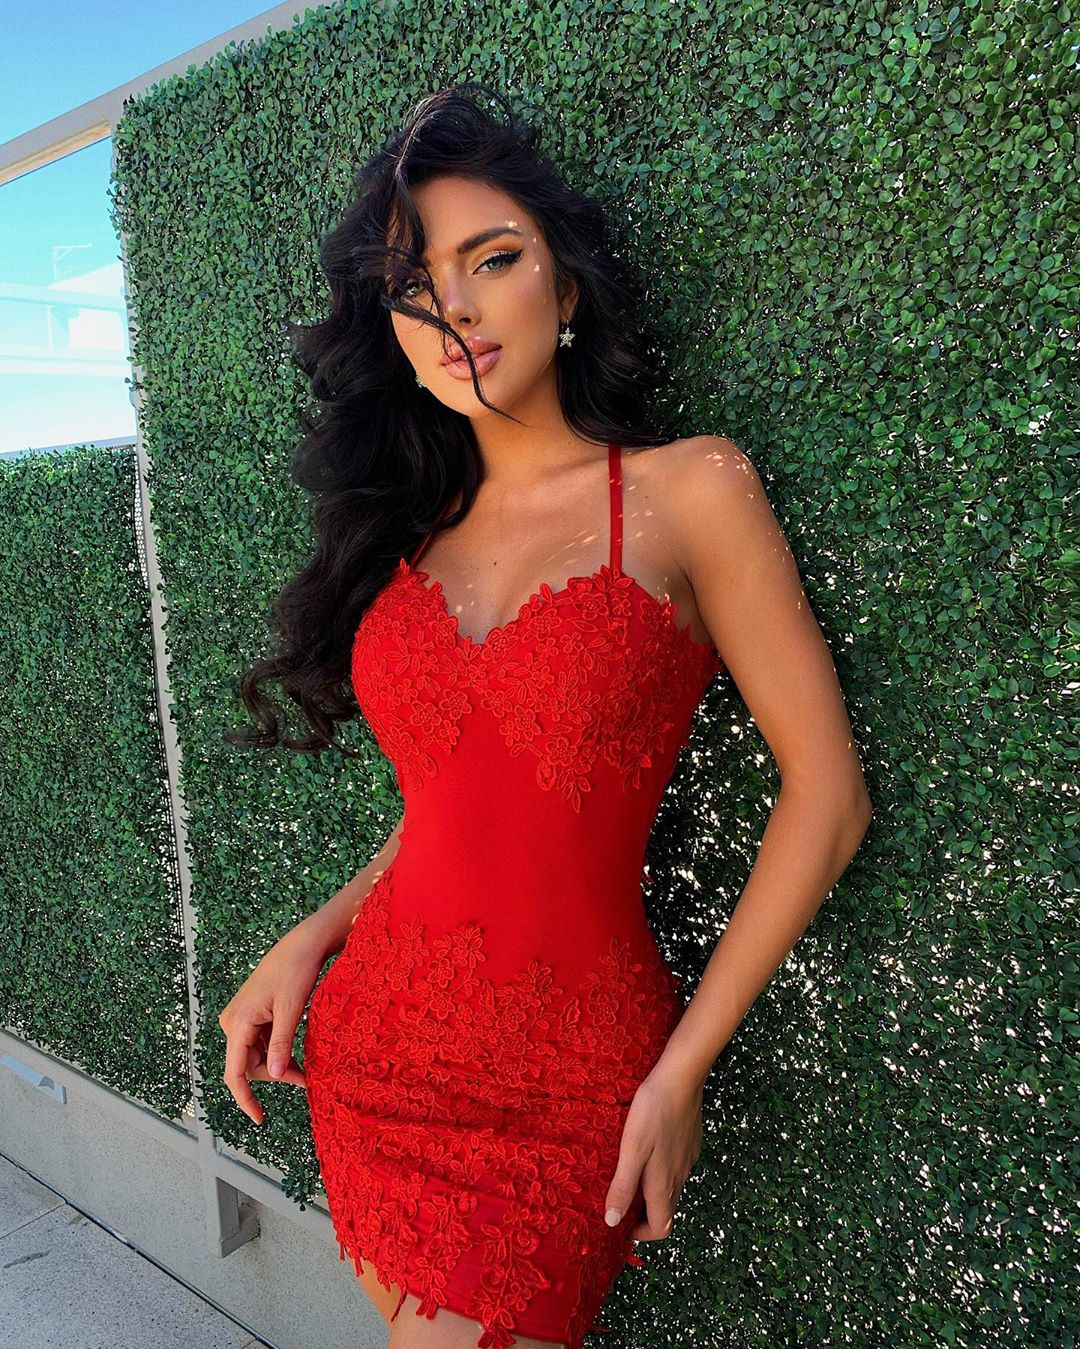 Kelsie Jean Smeby Hot Red Dress Outdoors Pics - Kelsie Jean Smeby Hot Red Dress Outdoors Pics